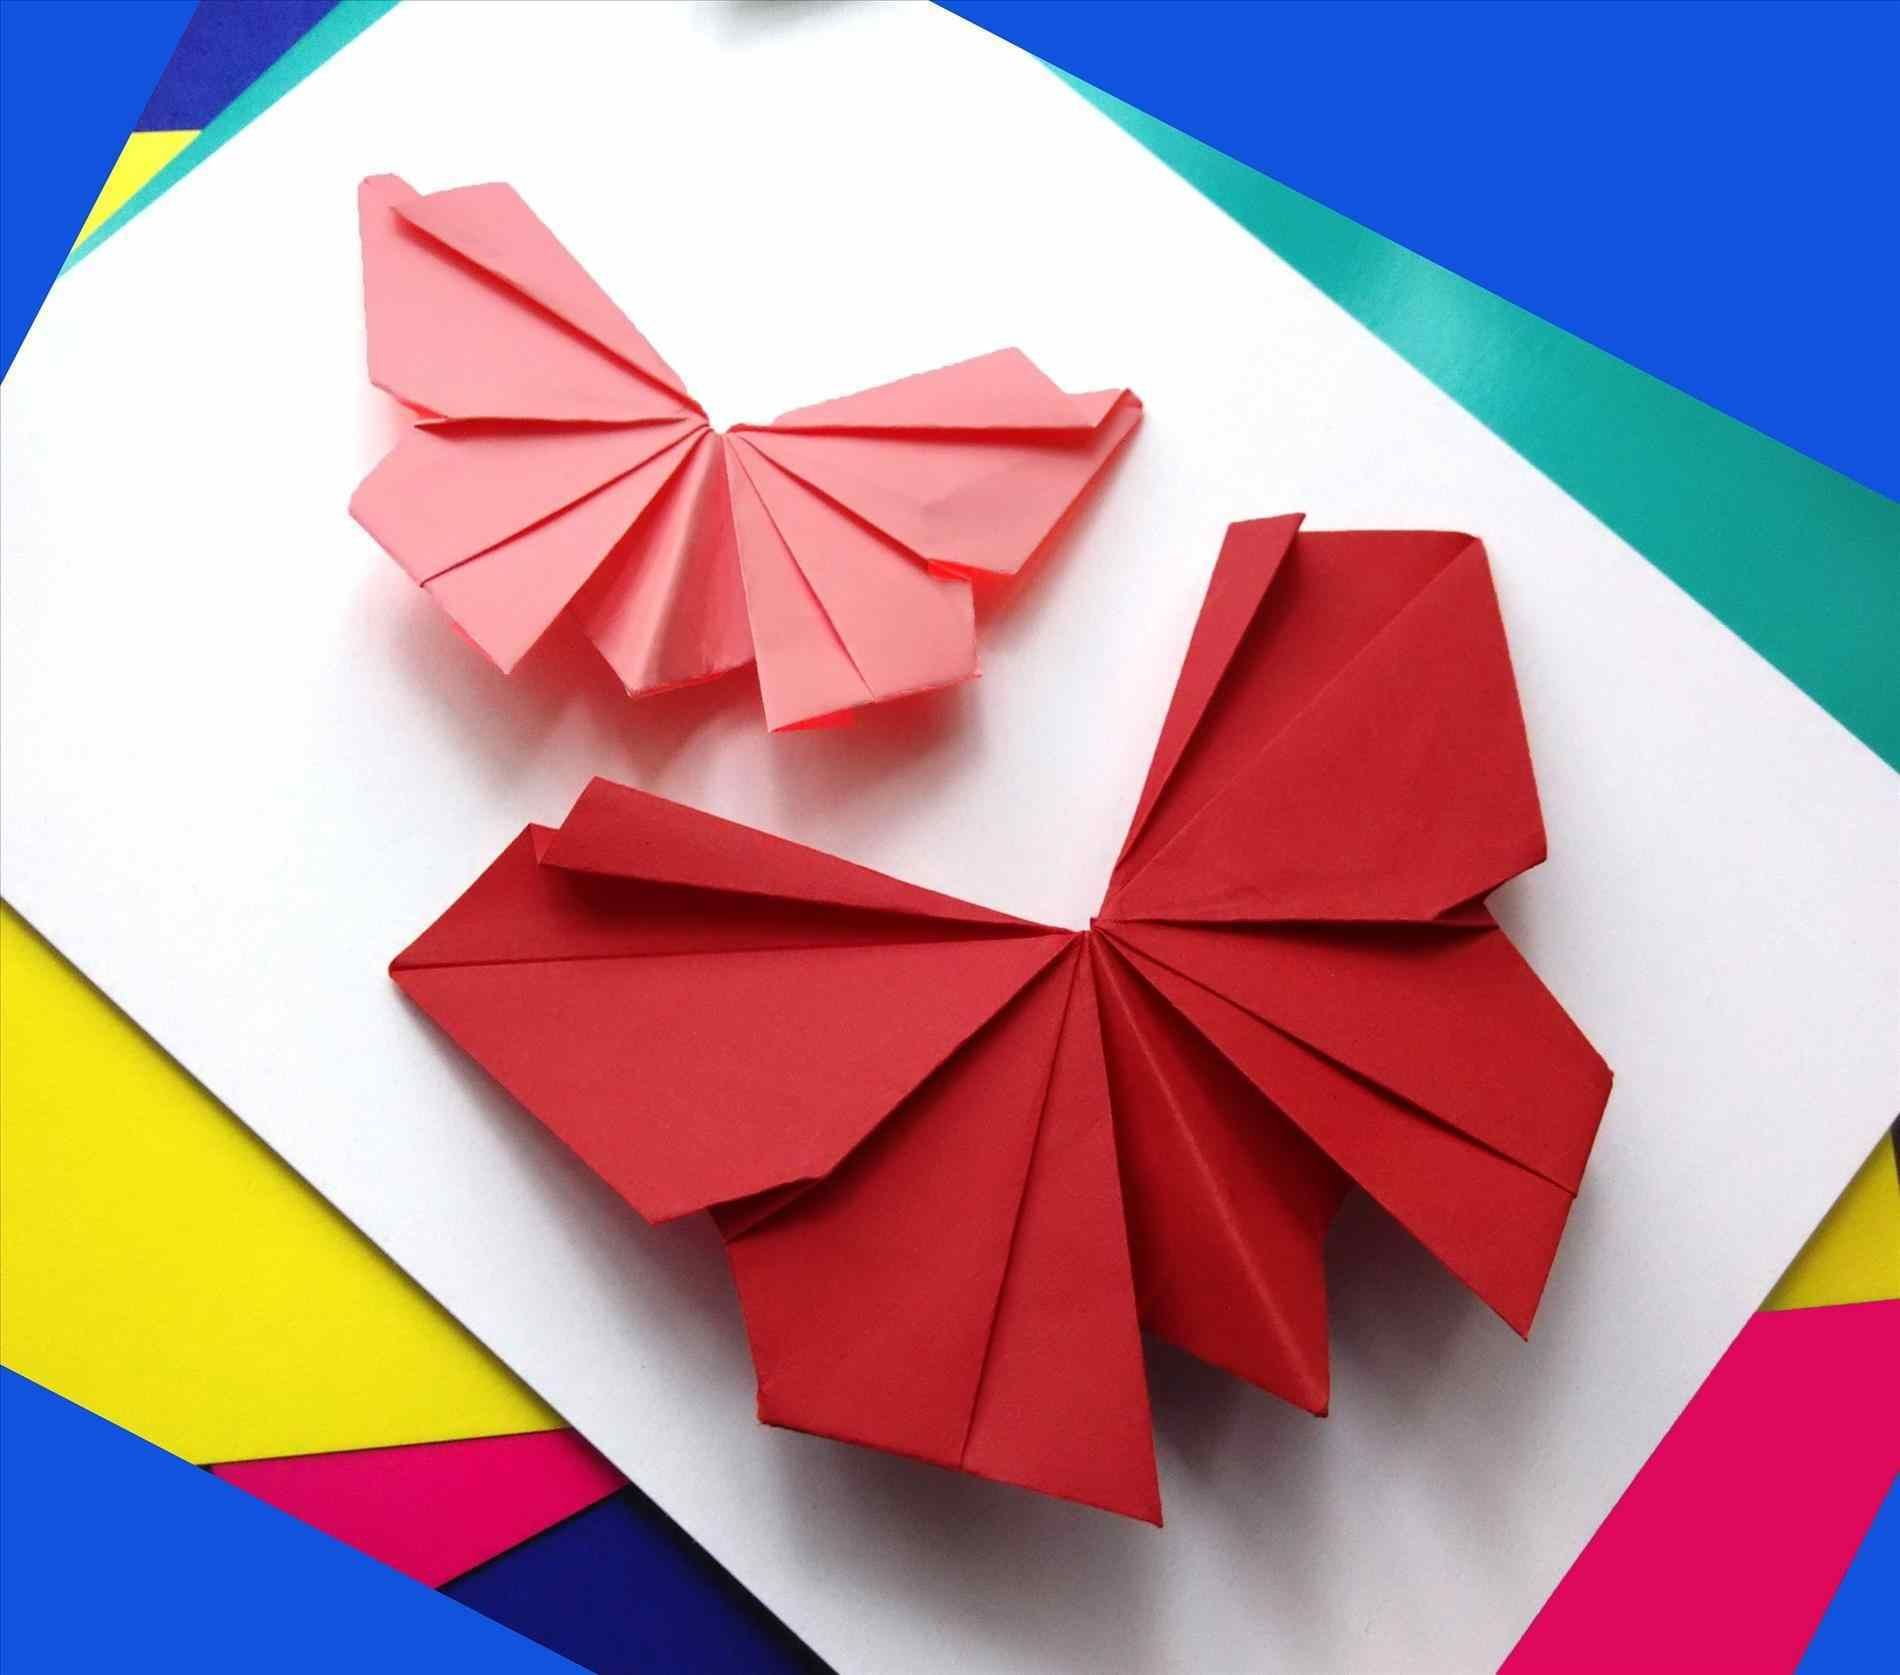 10 Awesome in 2020 | Origami art, Flower diy crafts, Origami crafts | 1675x1900